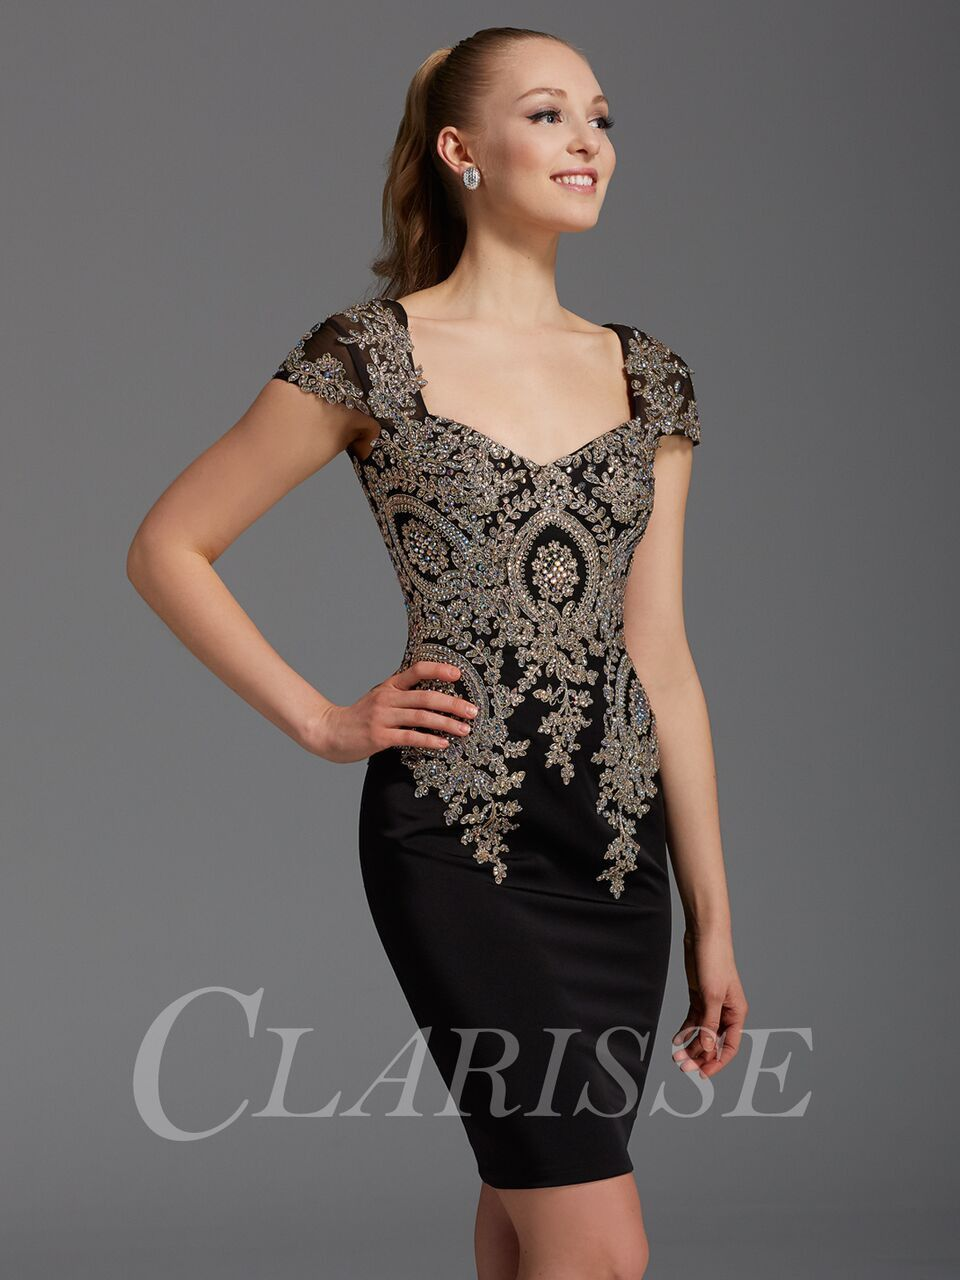 Clarisse blackgold homecoming dress products pinterest